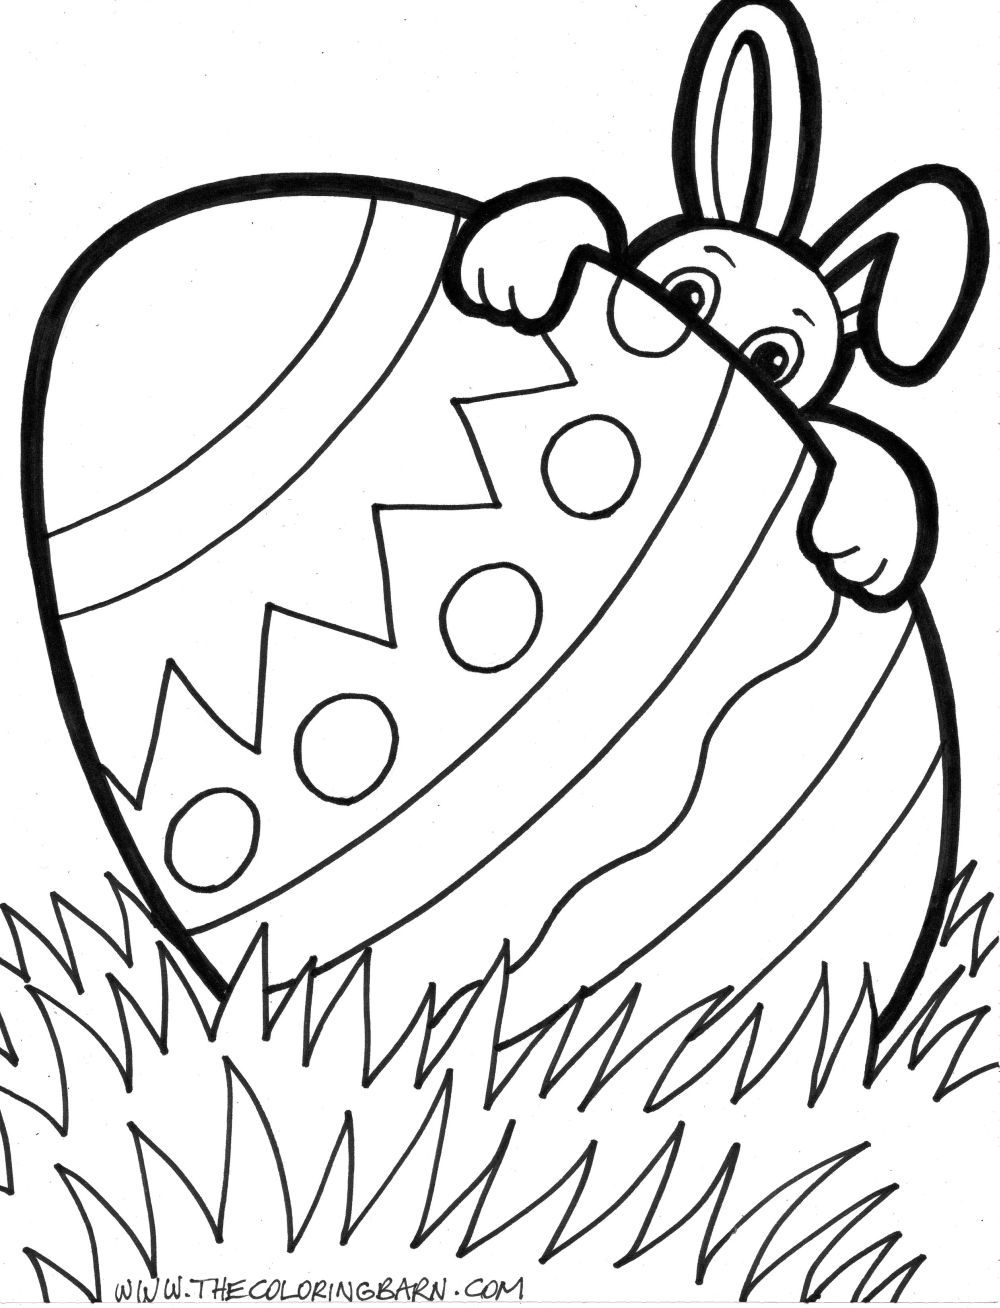 Easter printable coloring pages | The Coloring Barn: Printable ...